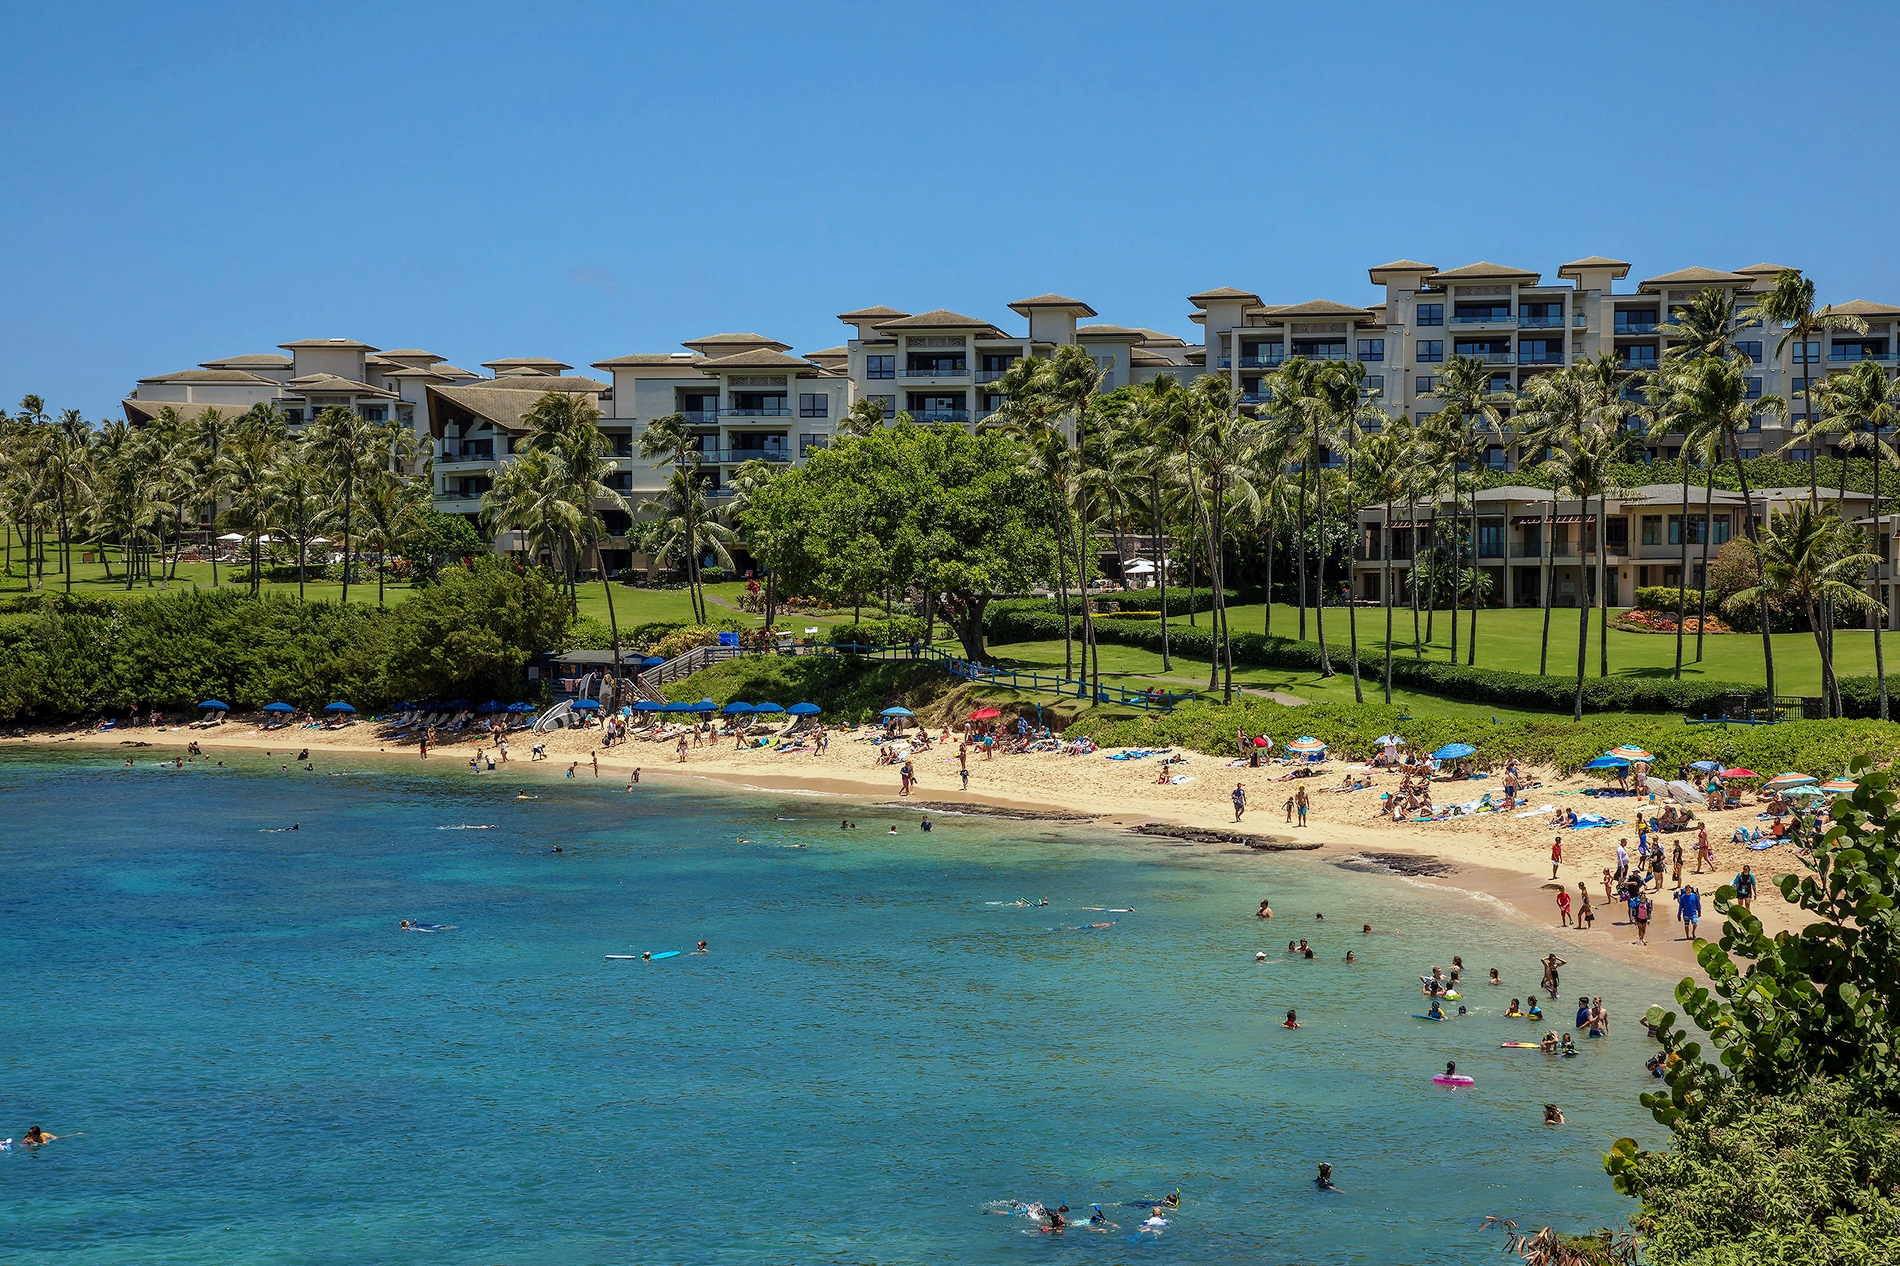 Kapalua Bay Villas - Beachfront Condos in Maui